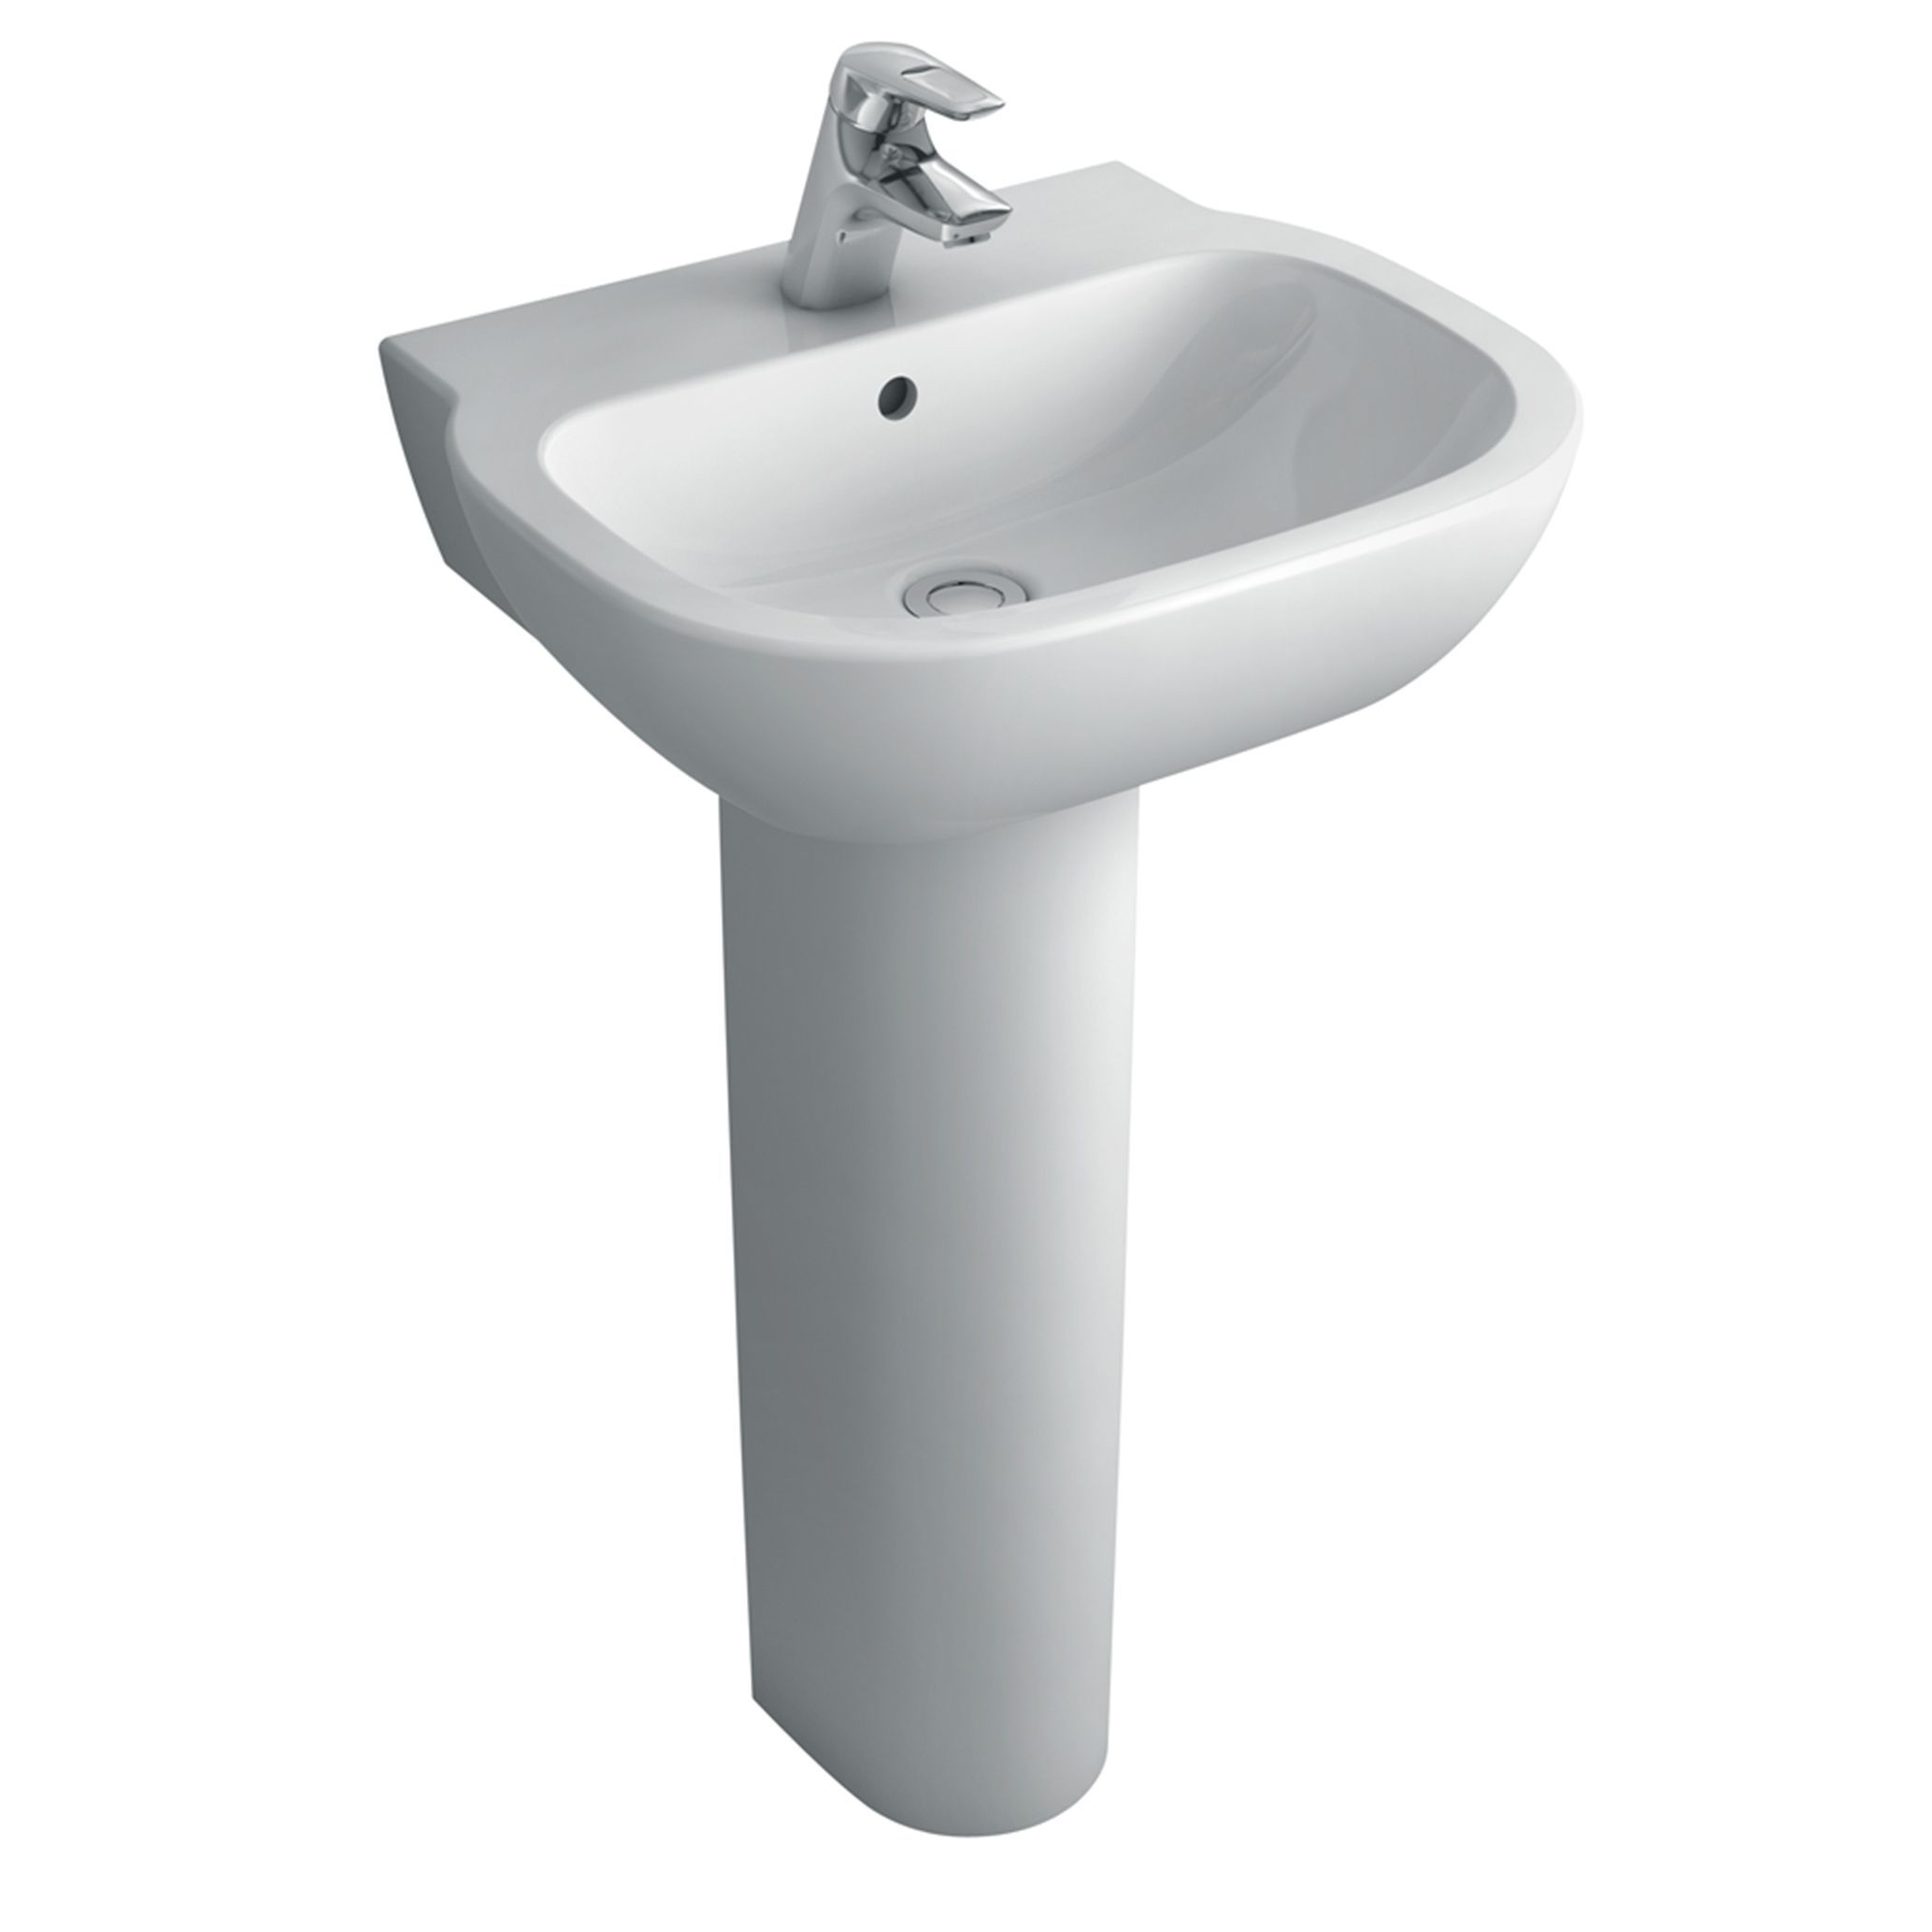 Ideal Standard Imagine Pedestal Basin